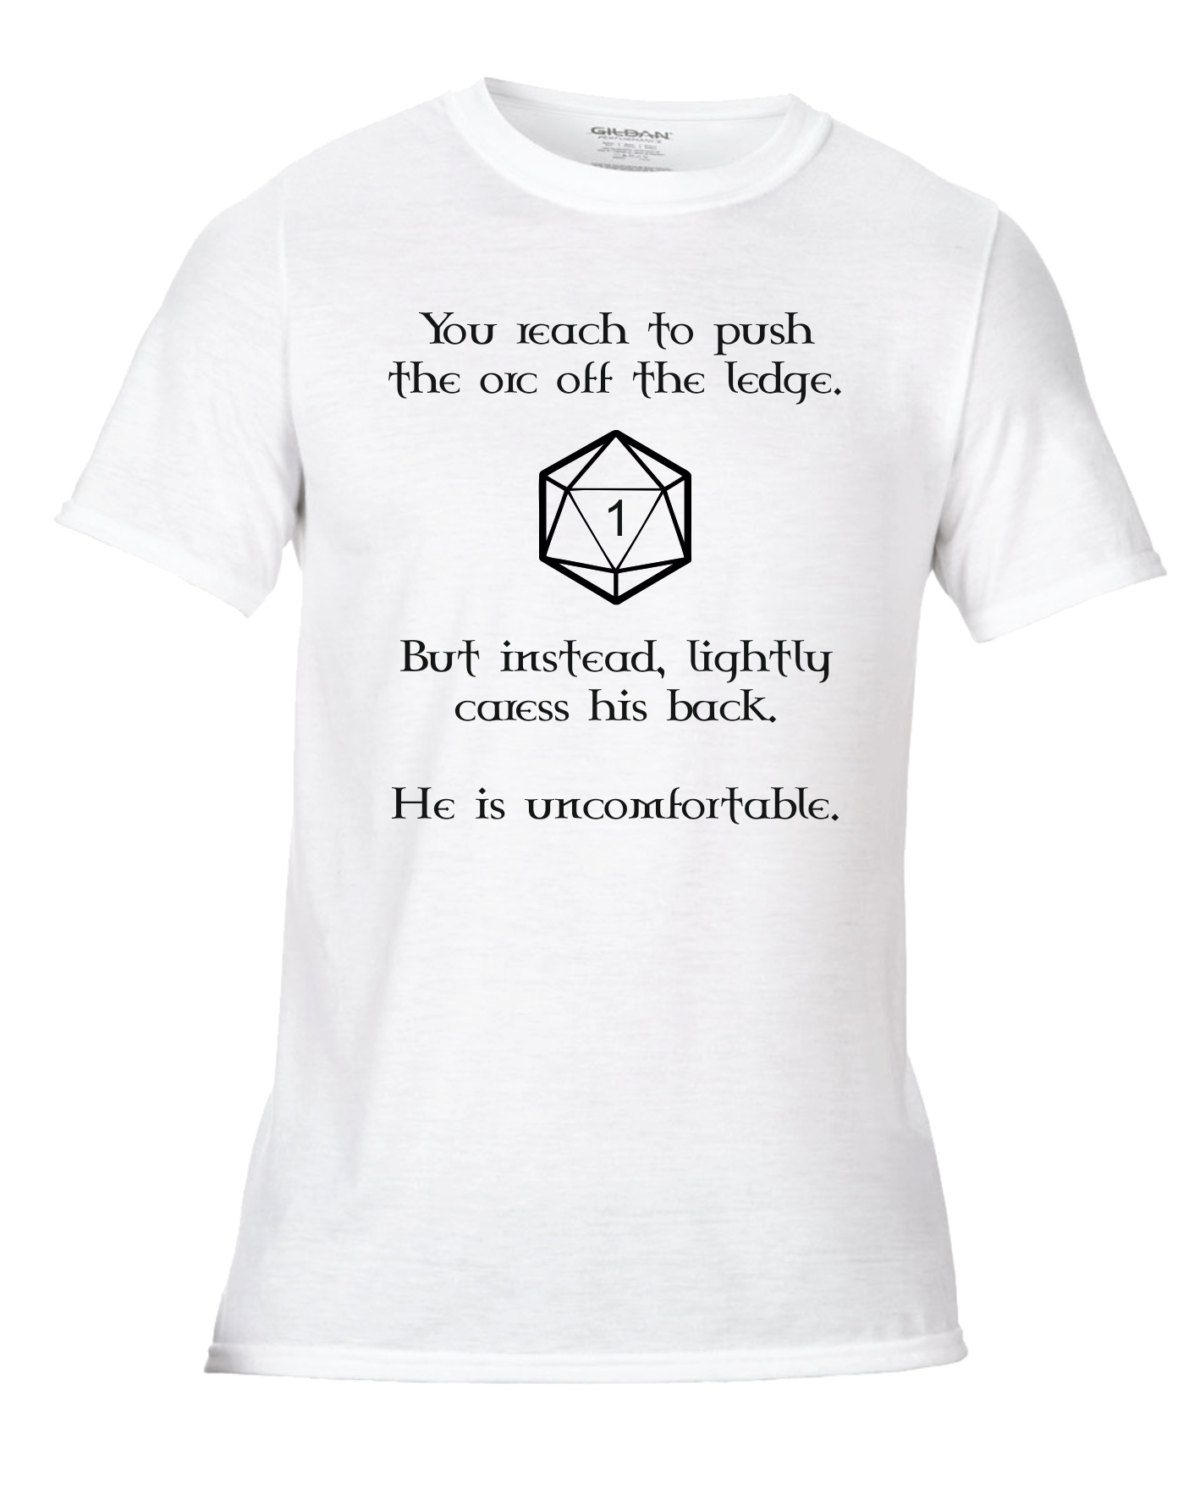 b65aa67f0a2 Uncomfortable Orc D20 DnD Dungeons And Dragons Roleplay RPG Tabletop  Printed Fun Novelty Joke Unisex T-Shirt (8.99 GBP) by SpaceRags